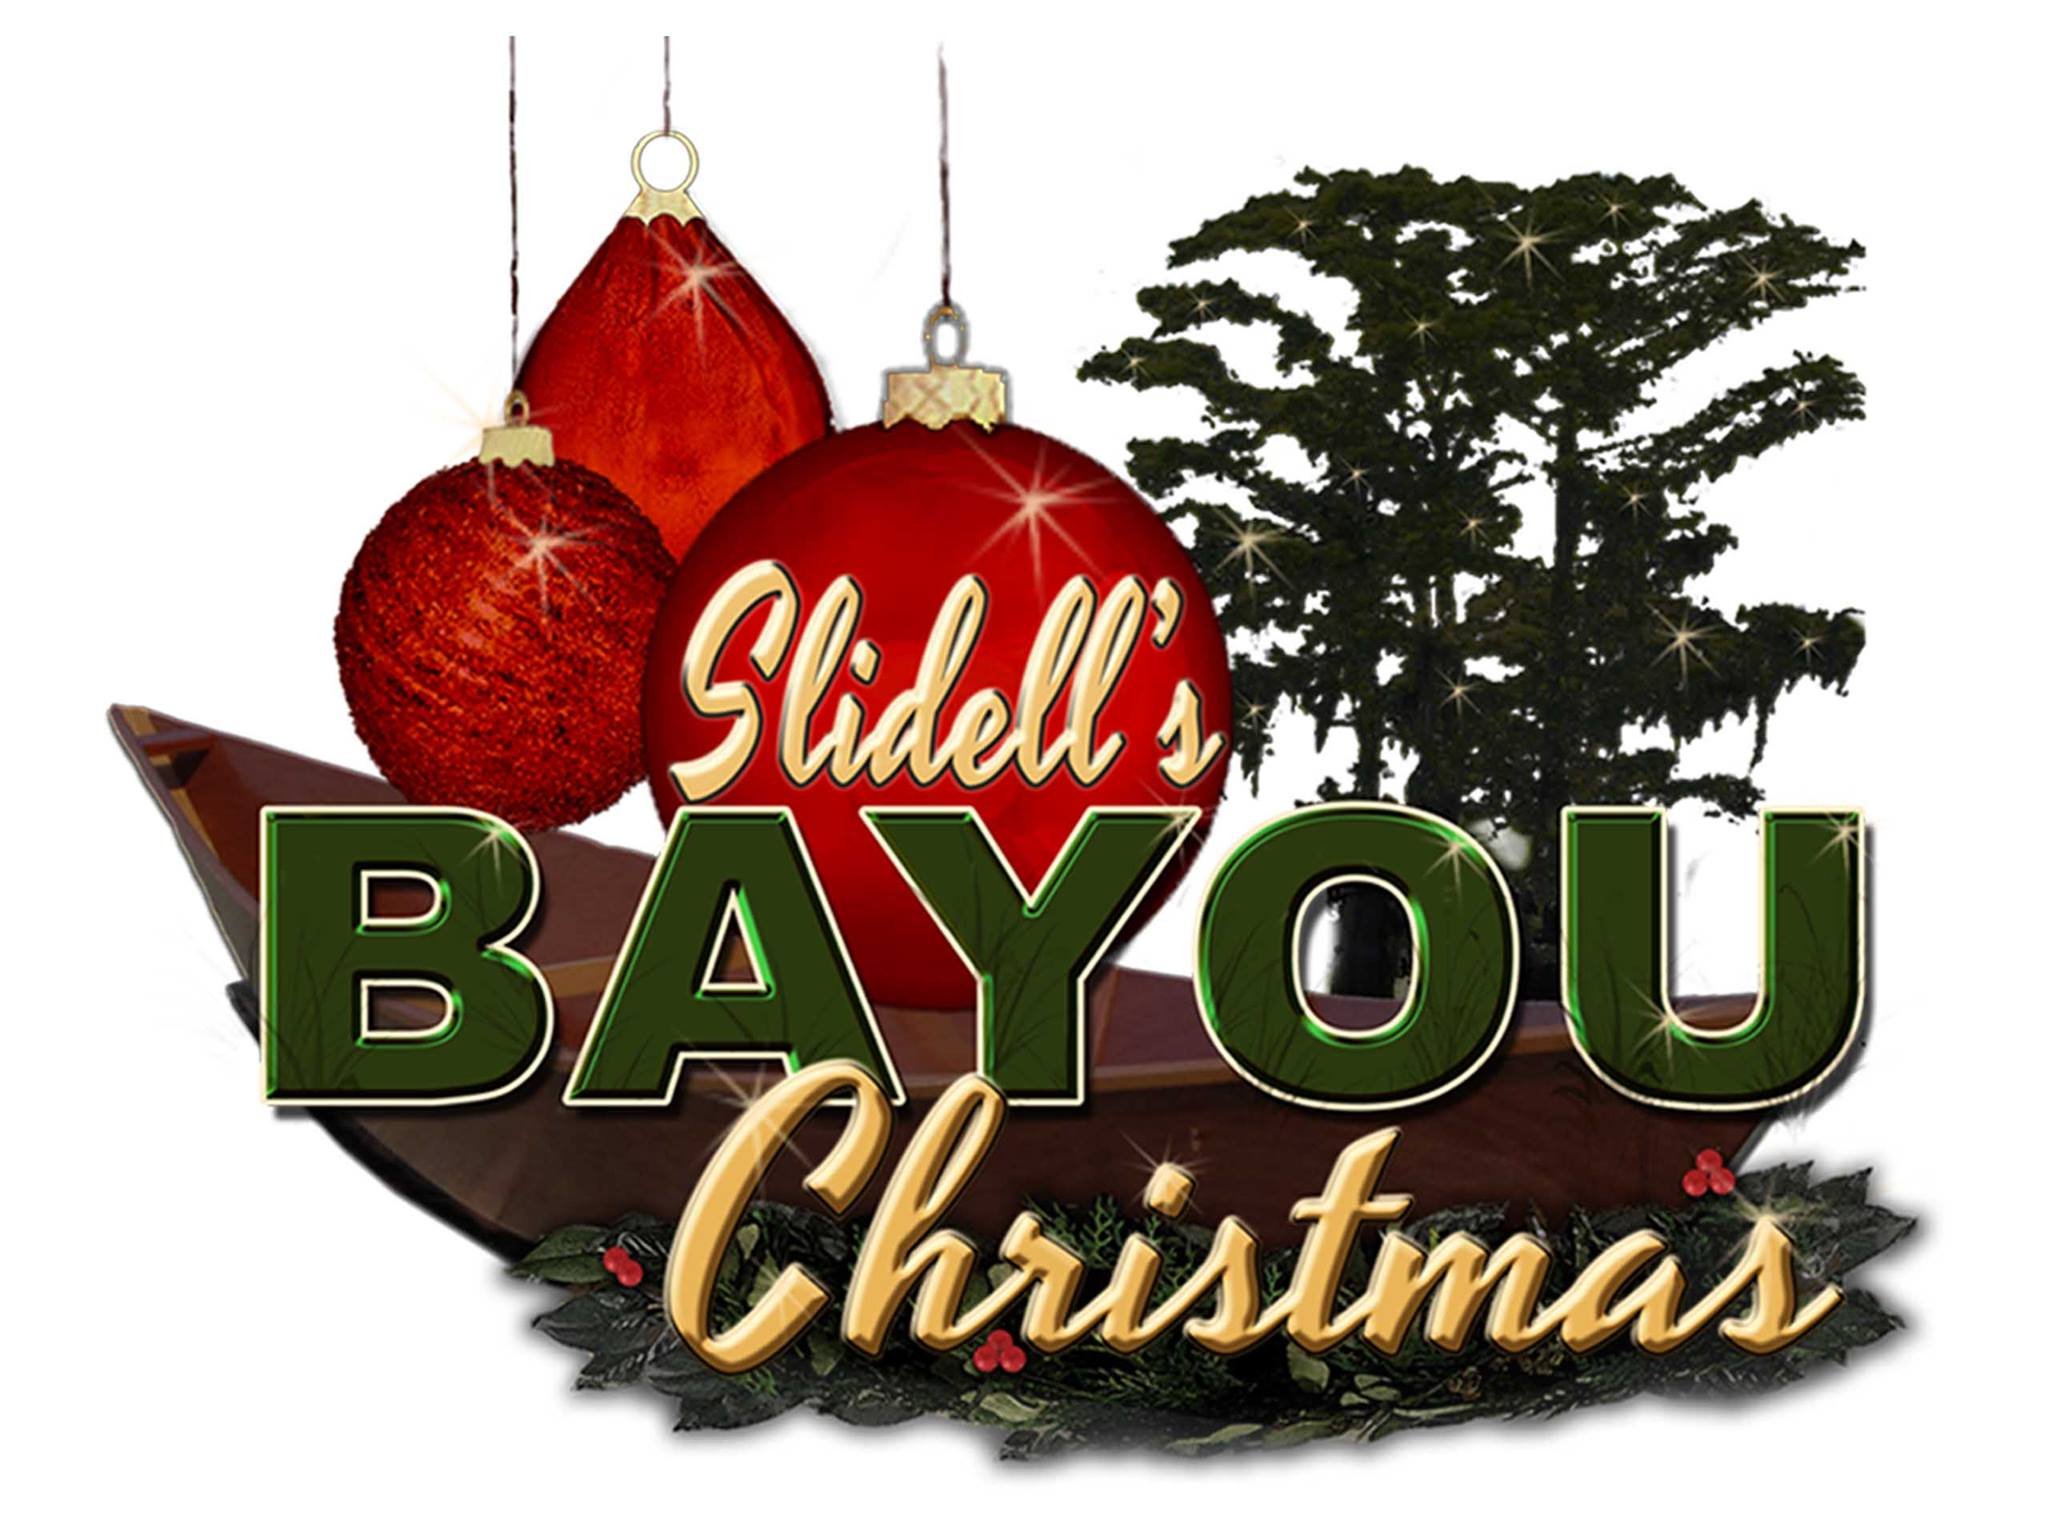 slidells bayou christmas - Christmas In The Bayou